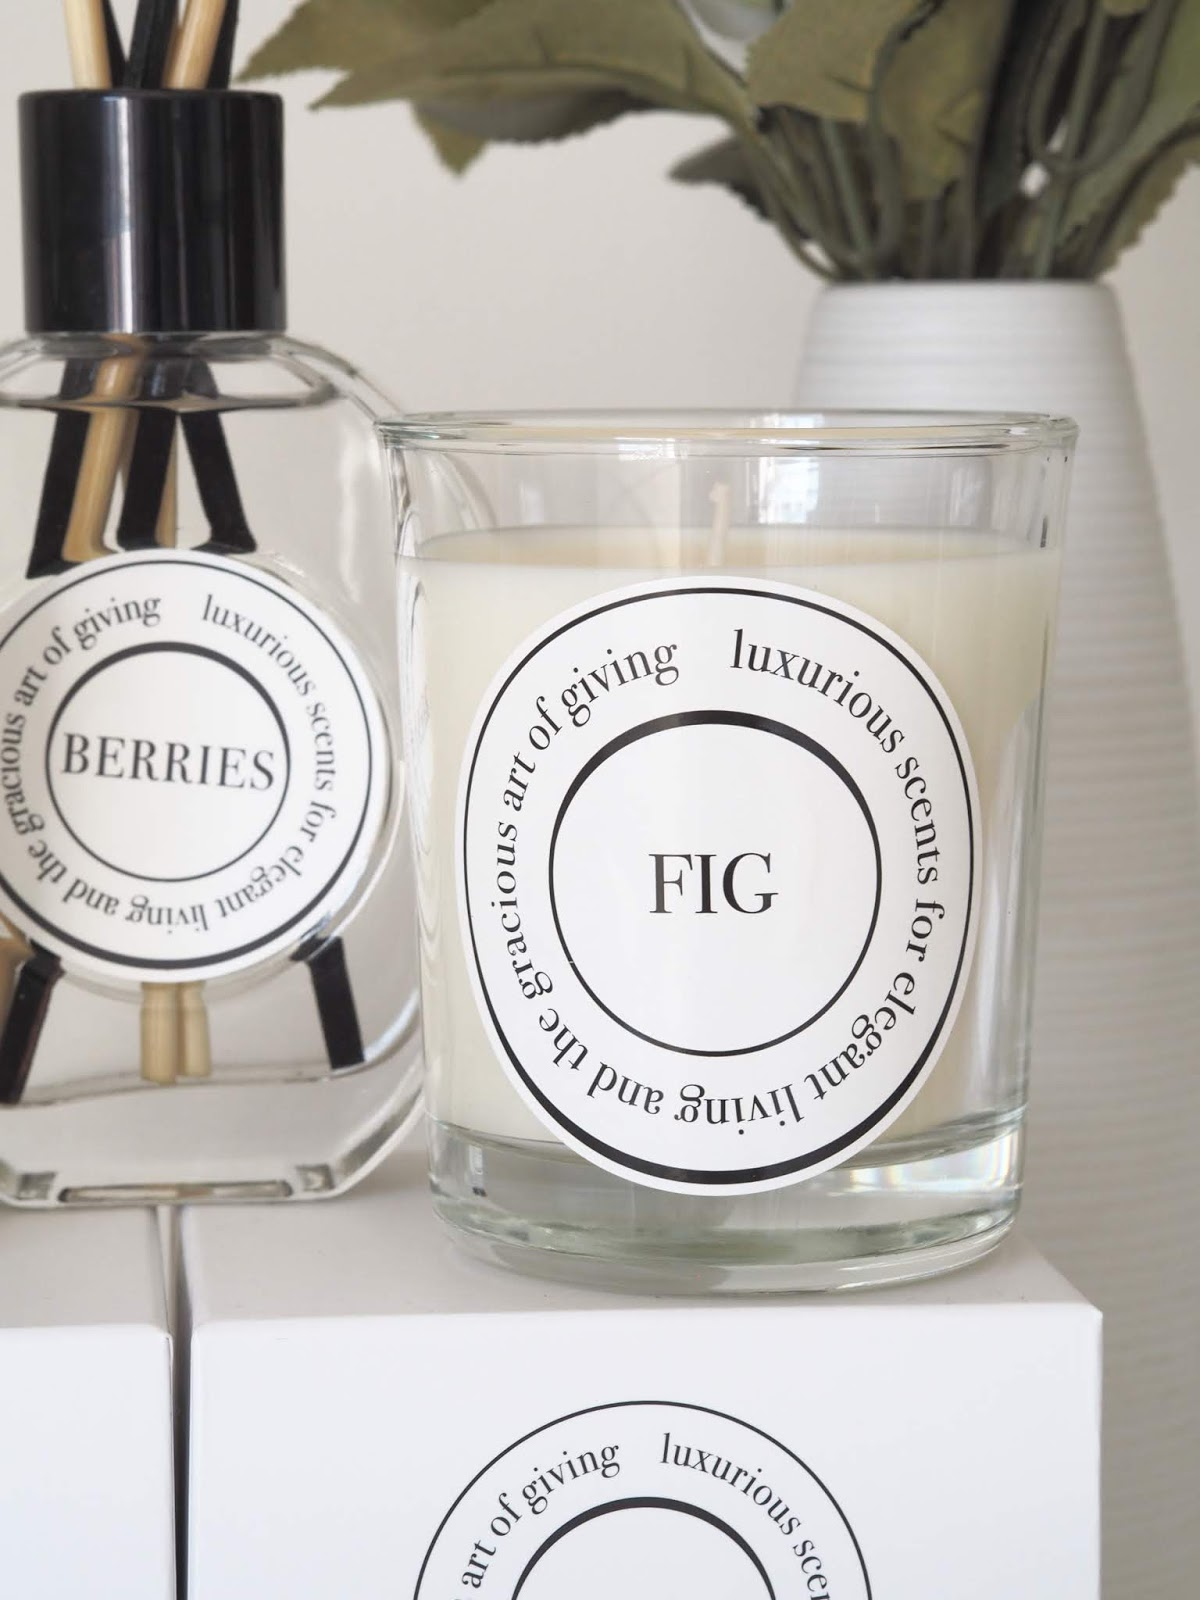 Aldi dupe \ Diptyque \ home fragrance \ berries \ baies \ reed diffuser \ fig candle \ Priceless Life of Mine \ over 40 lifestyle blog